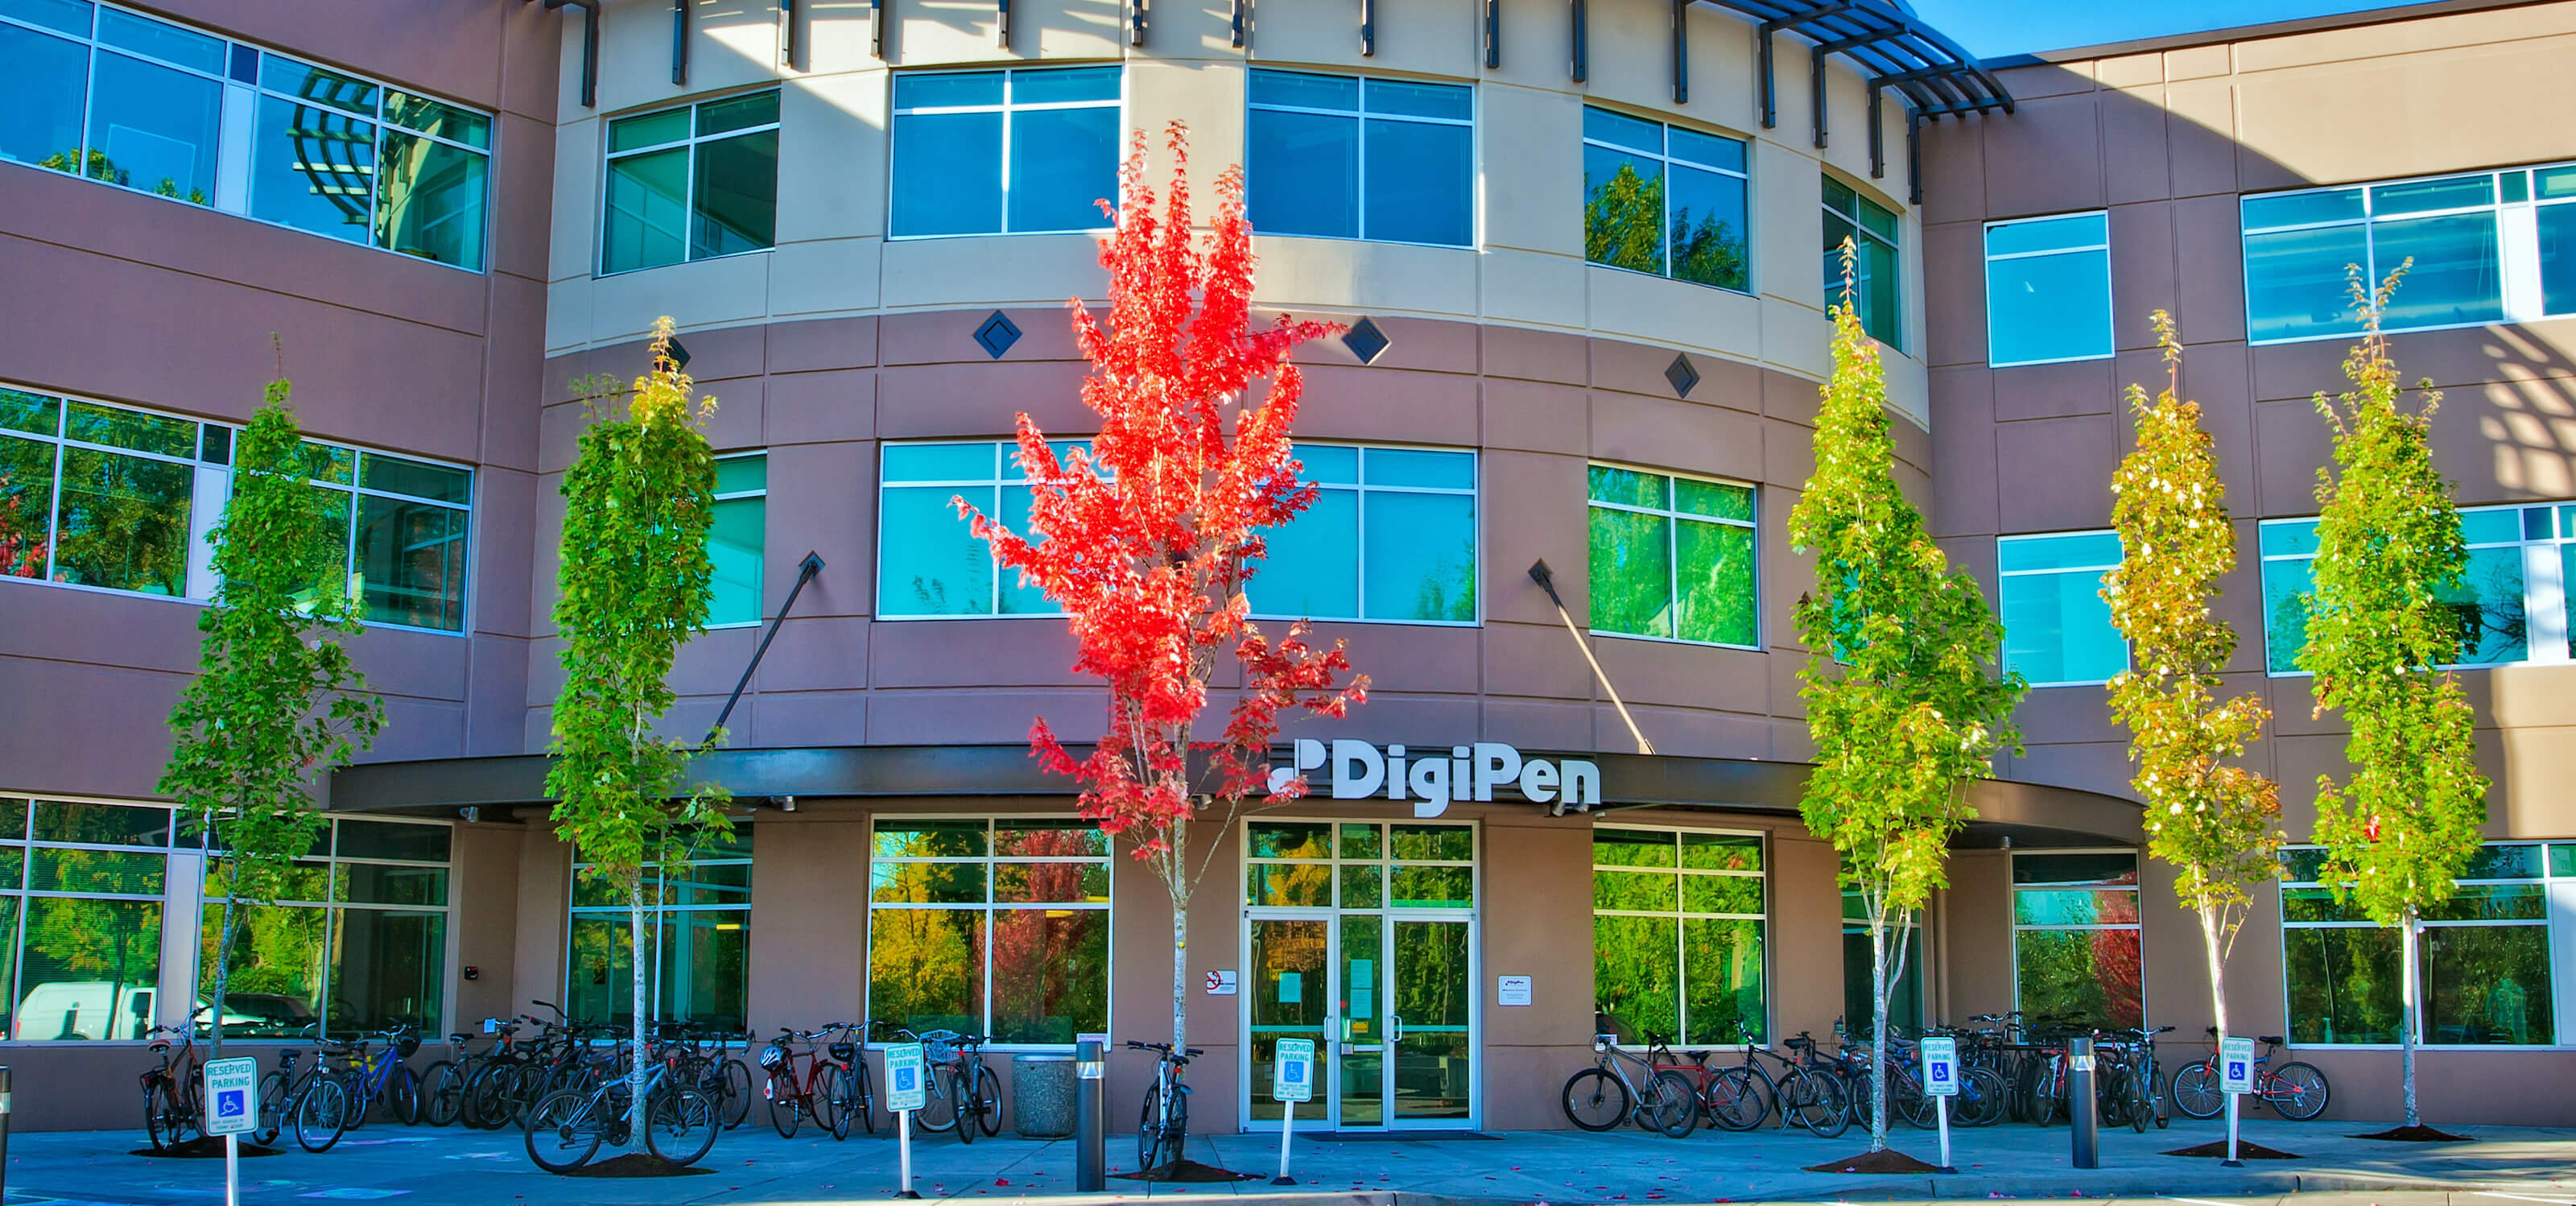 Close-up of the DigiPen front entrance on a sunny autumn day